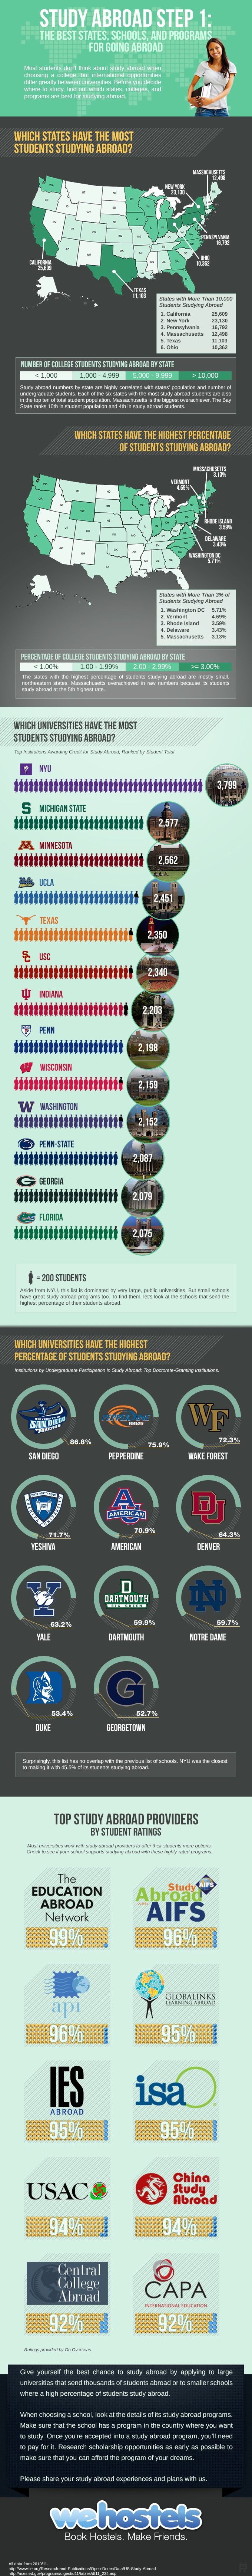 study-abroad-step-1-the-best-colleges-programs-and-states-for-studying-abroad_5183ec30bb032